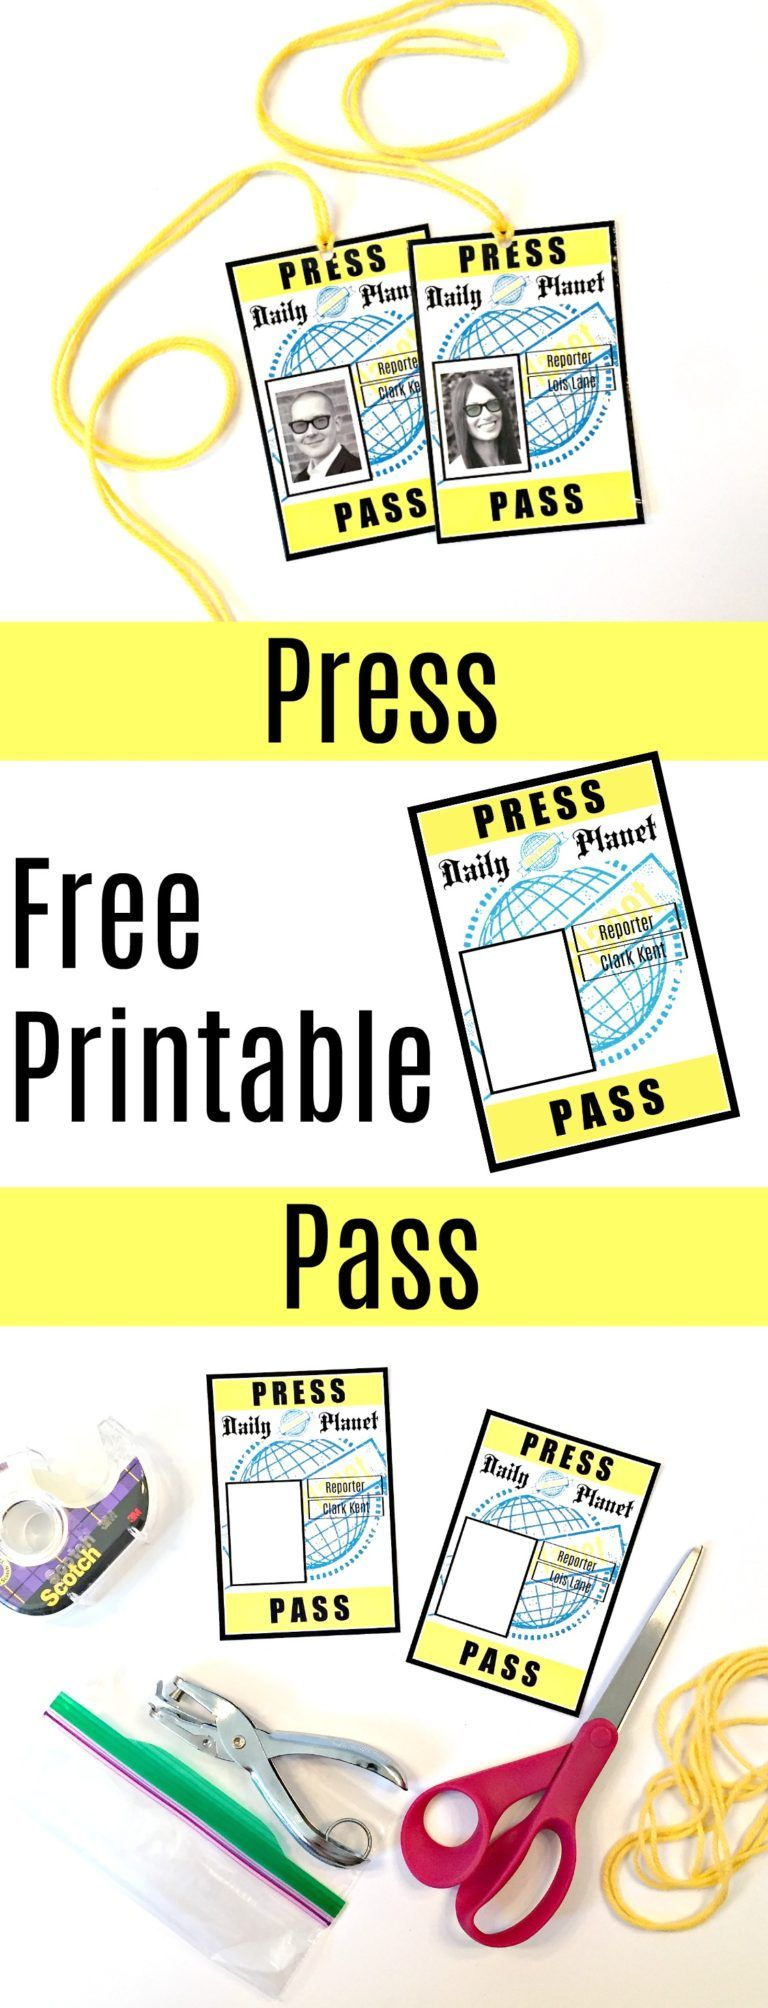 lois lane press pass printable free